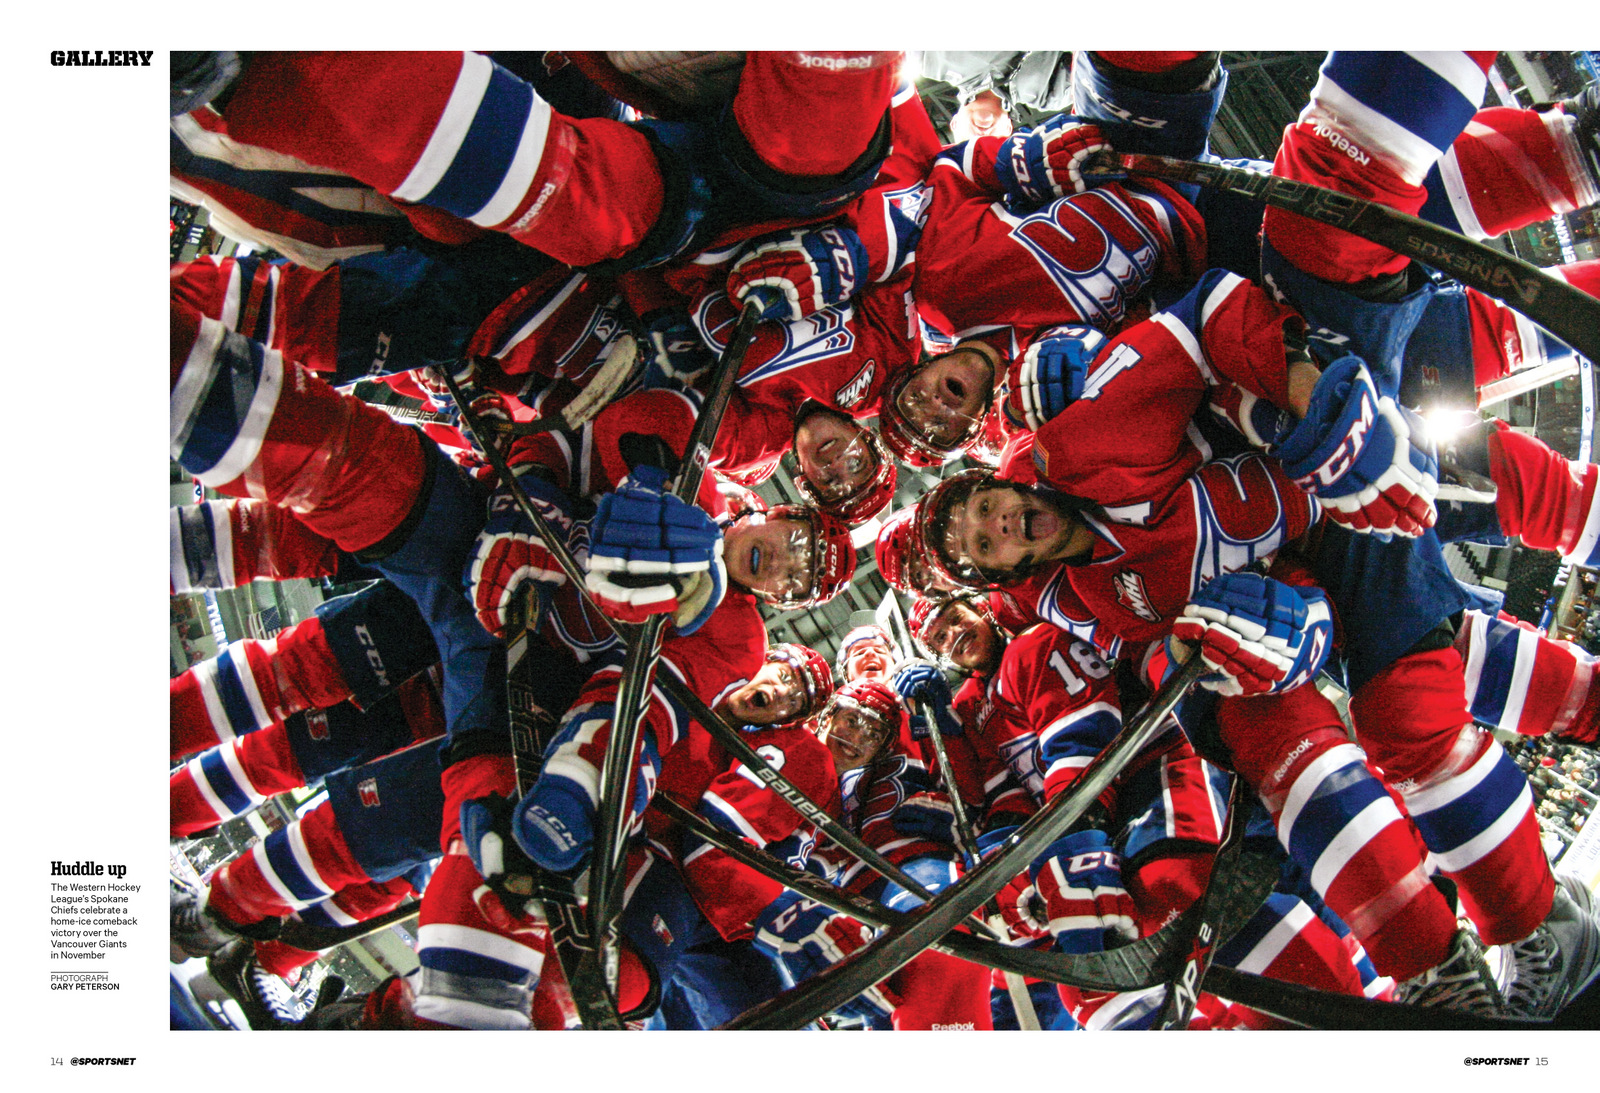 104-Gallery Huddle Published in Sportsnet.jpg